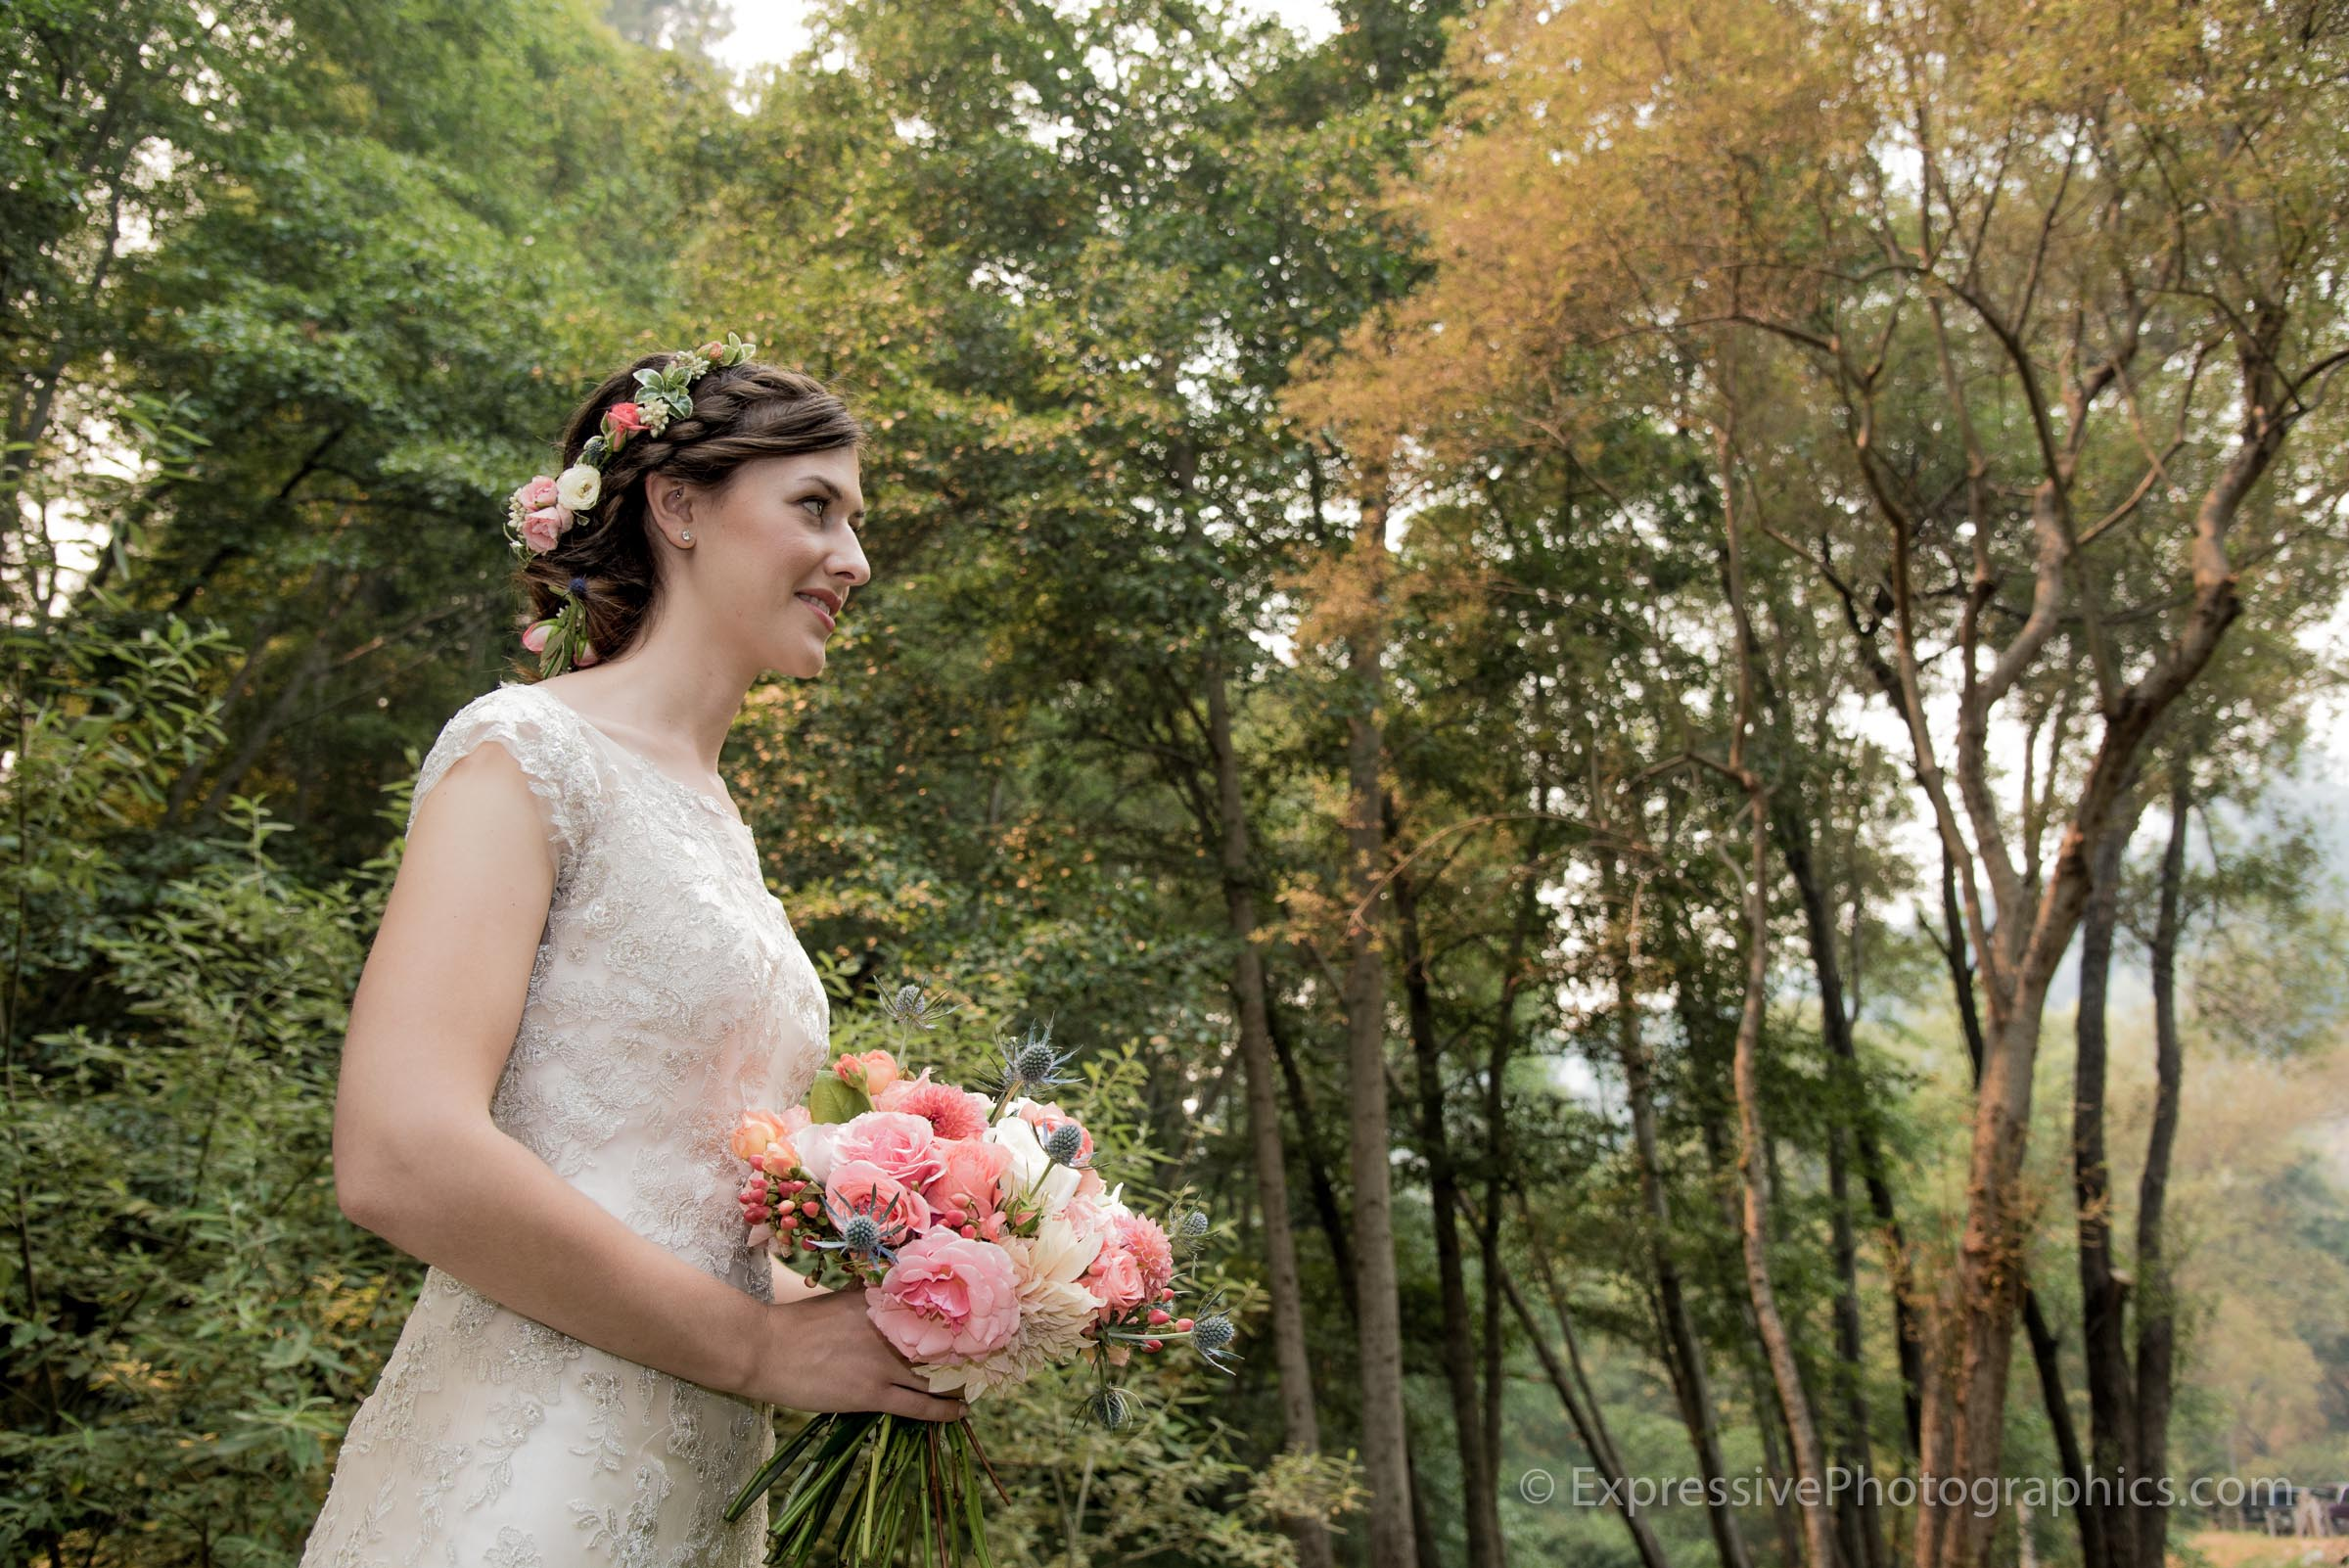 Expressive-Photographics-bride-in-forest-with-bouquet-20160723_0181.jpg